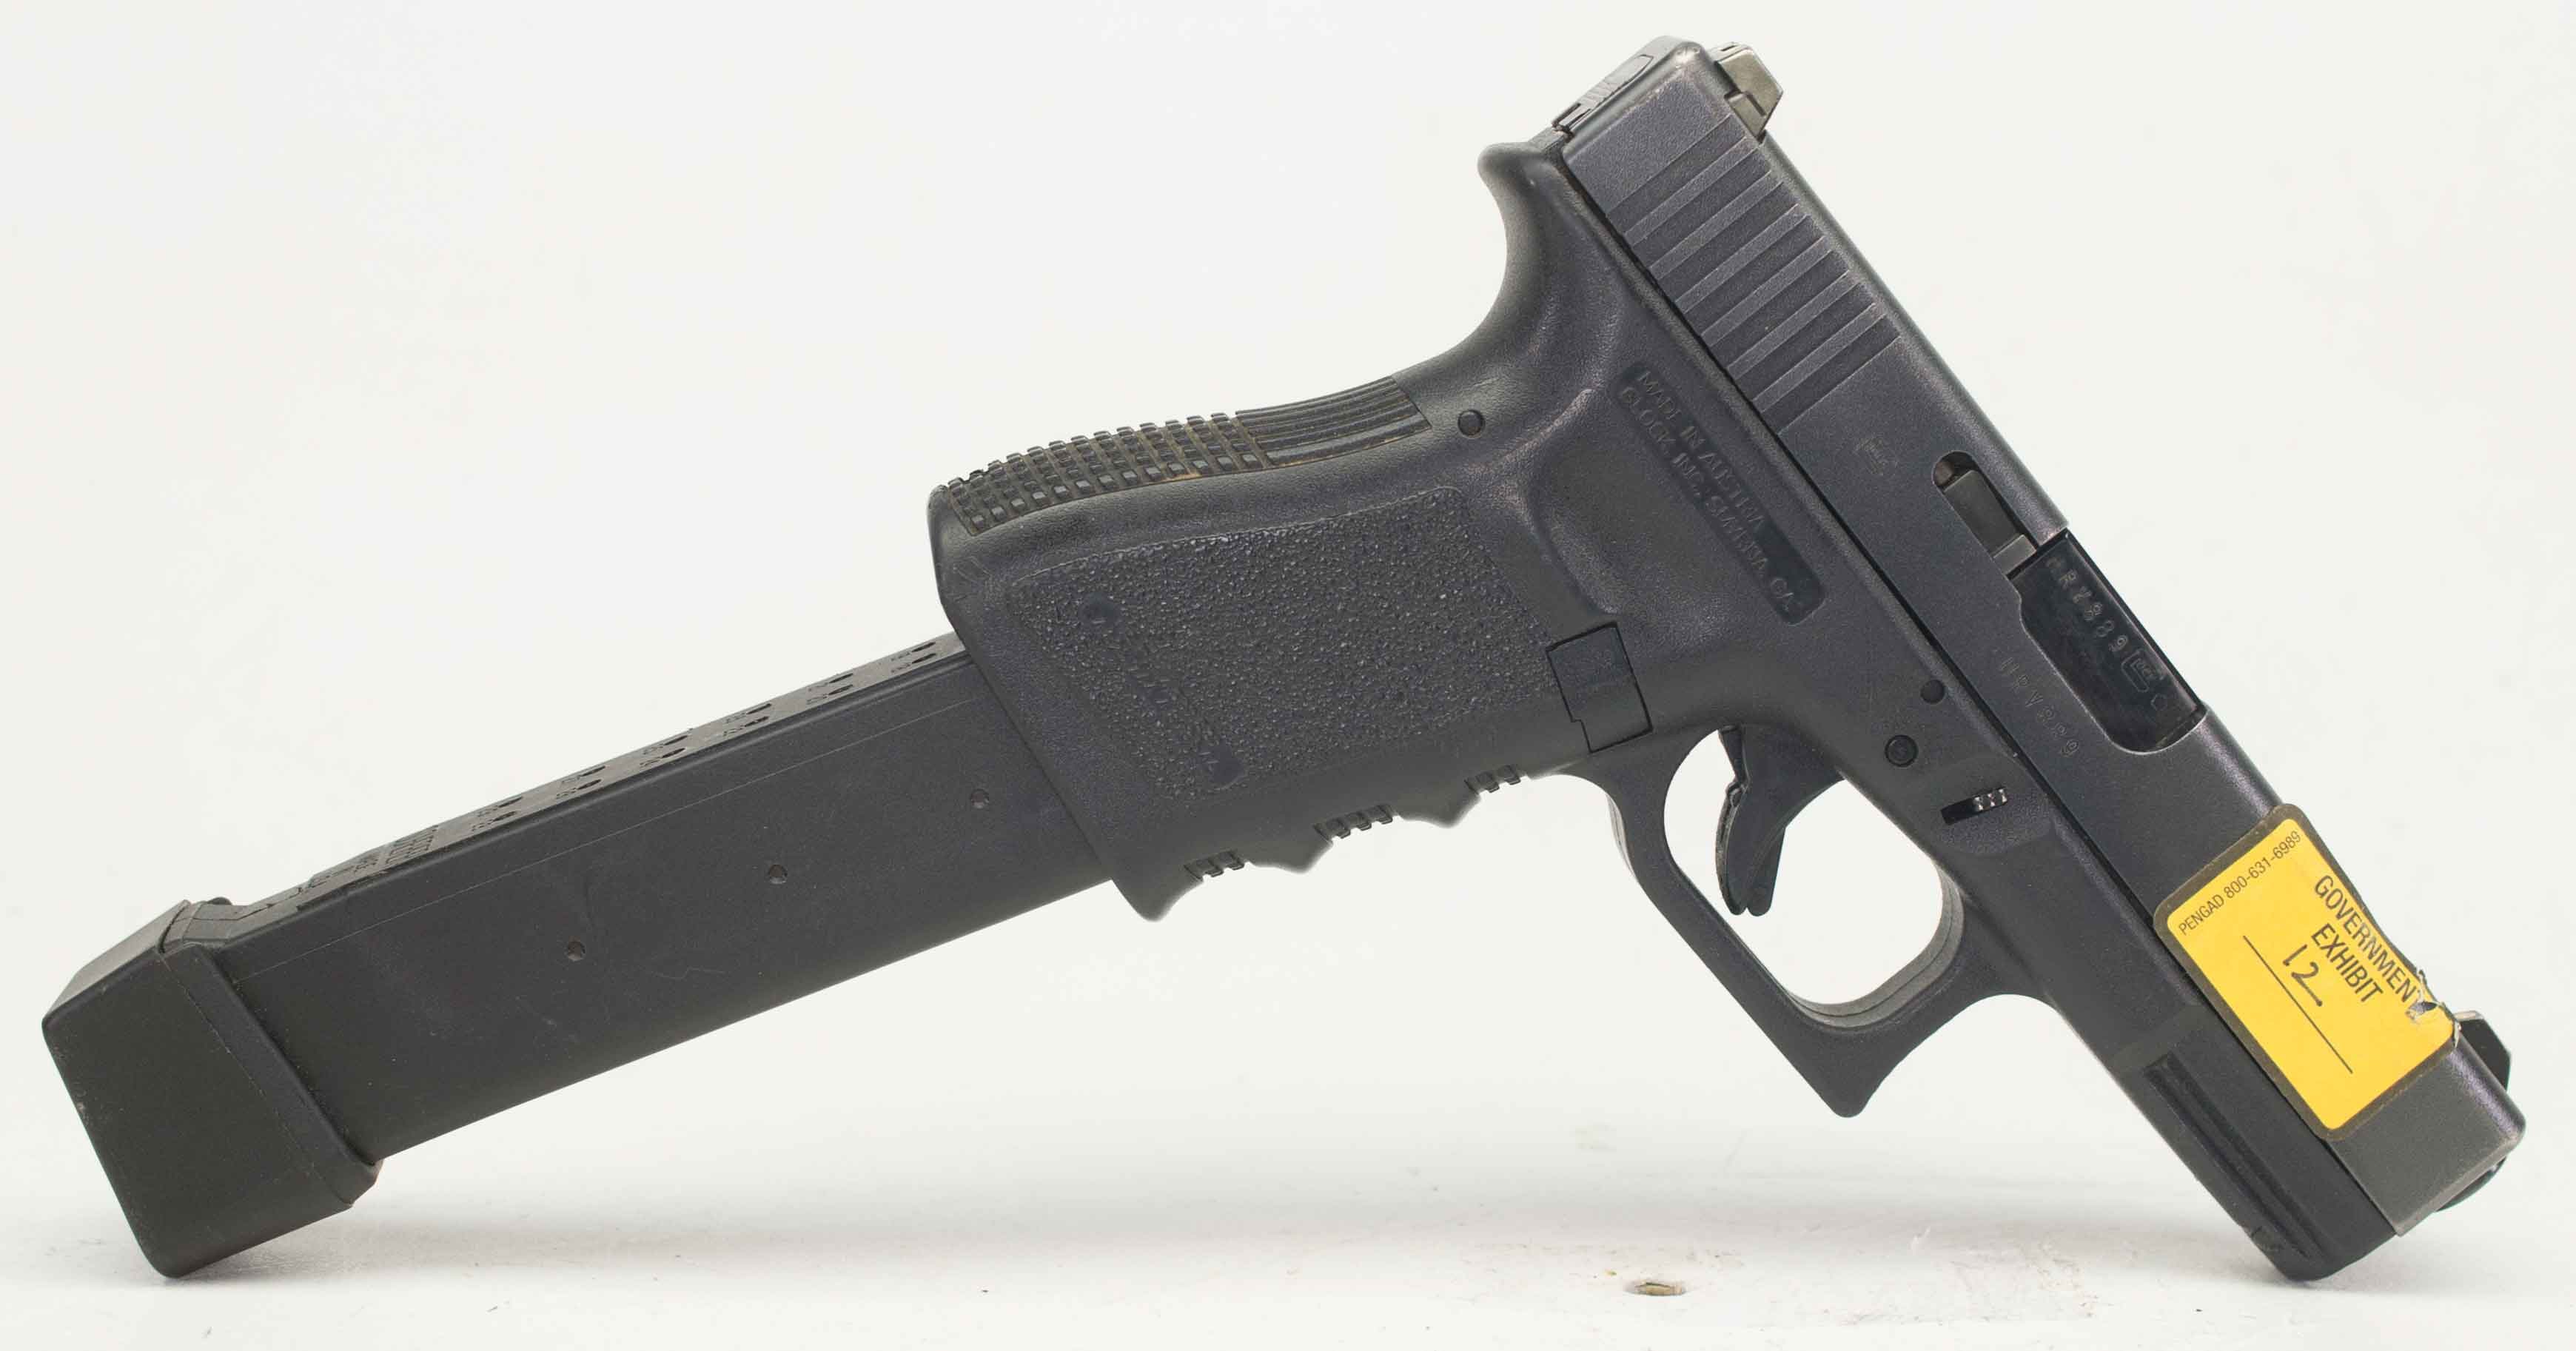 GLOCK 23 (Auction ID: 10921137, End Time : Mar. 15, 2018 23:25:00 ...